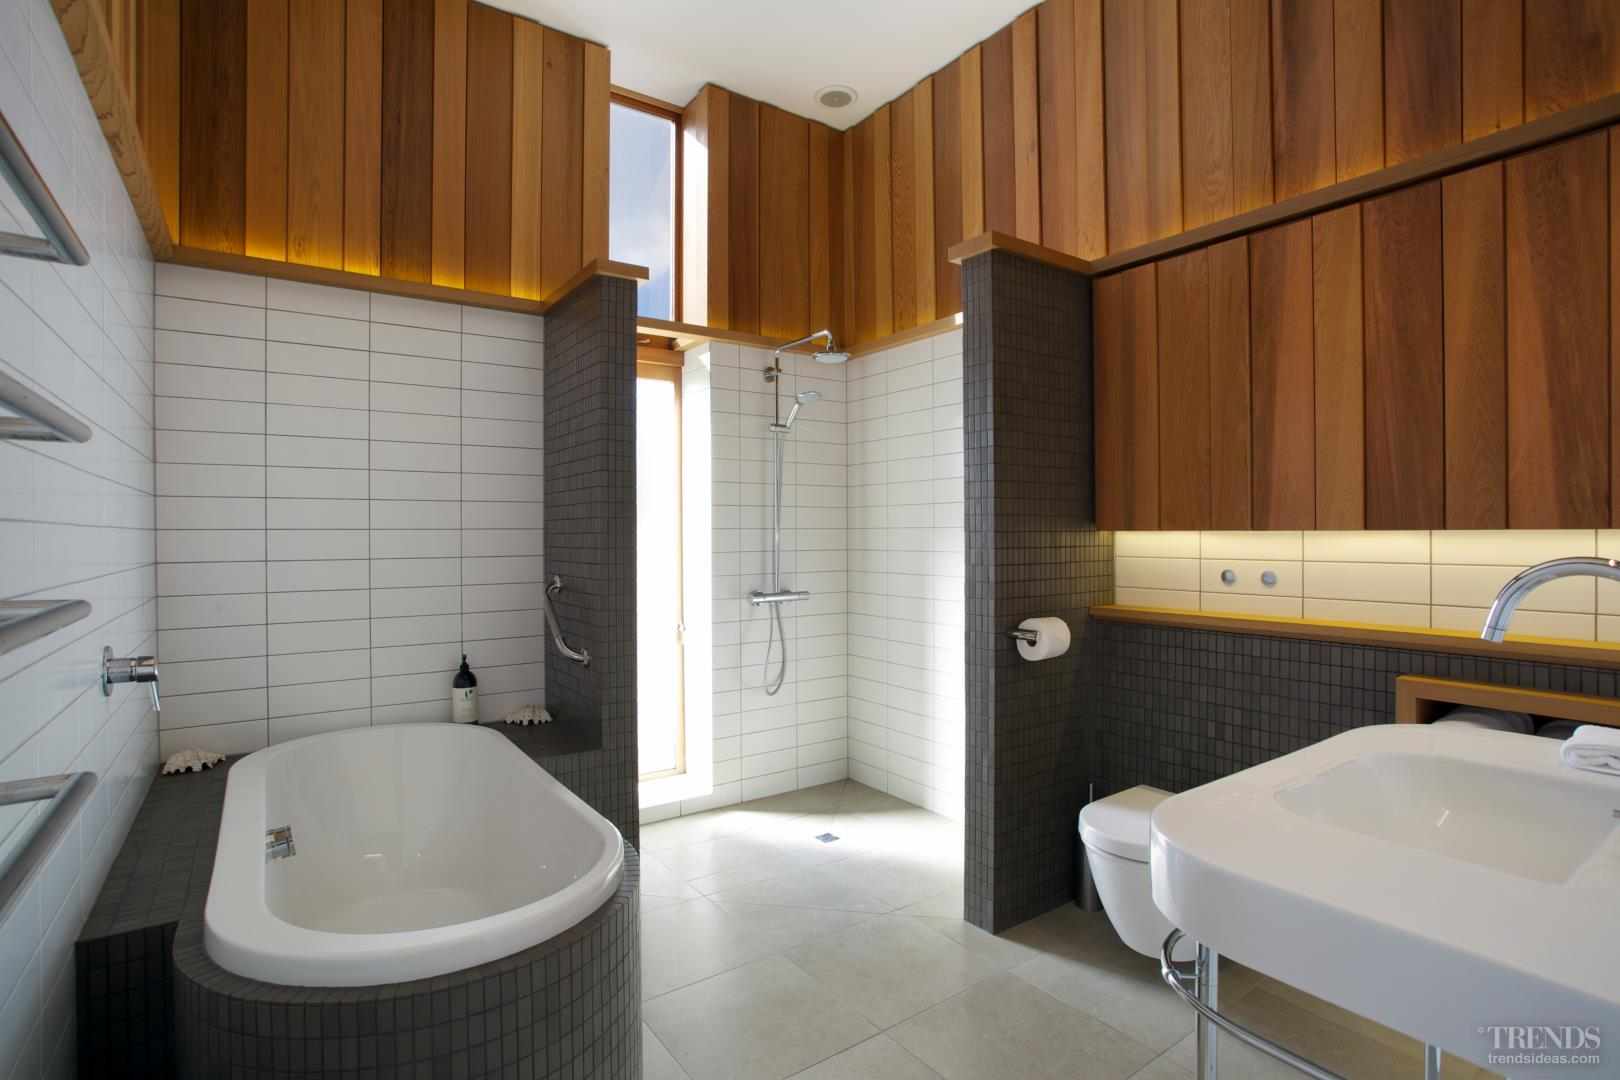 Bathroom ideas new zealand nkba award winners 2014 for Bathroom design ideas new zealand